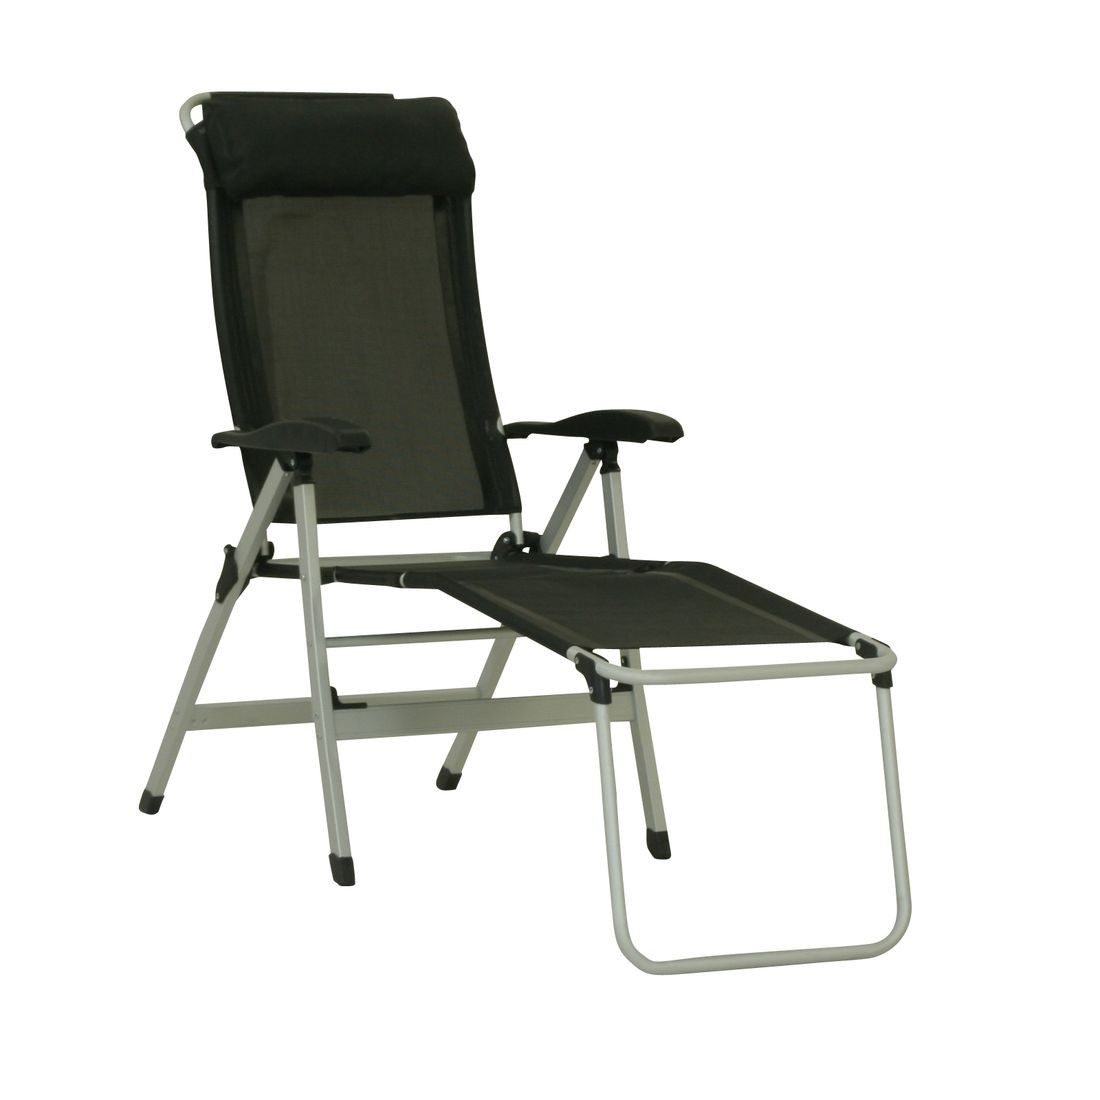 easy chairs with integral footrest wooden ikea 10t easychair aluminium camping chair high back incl